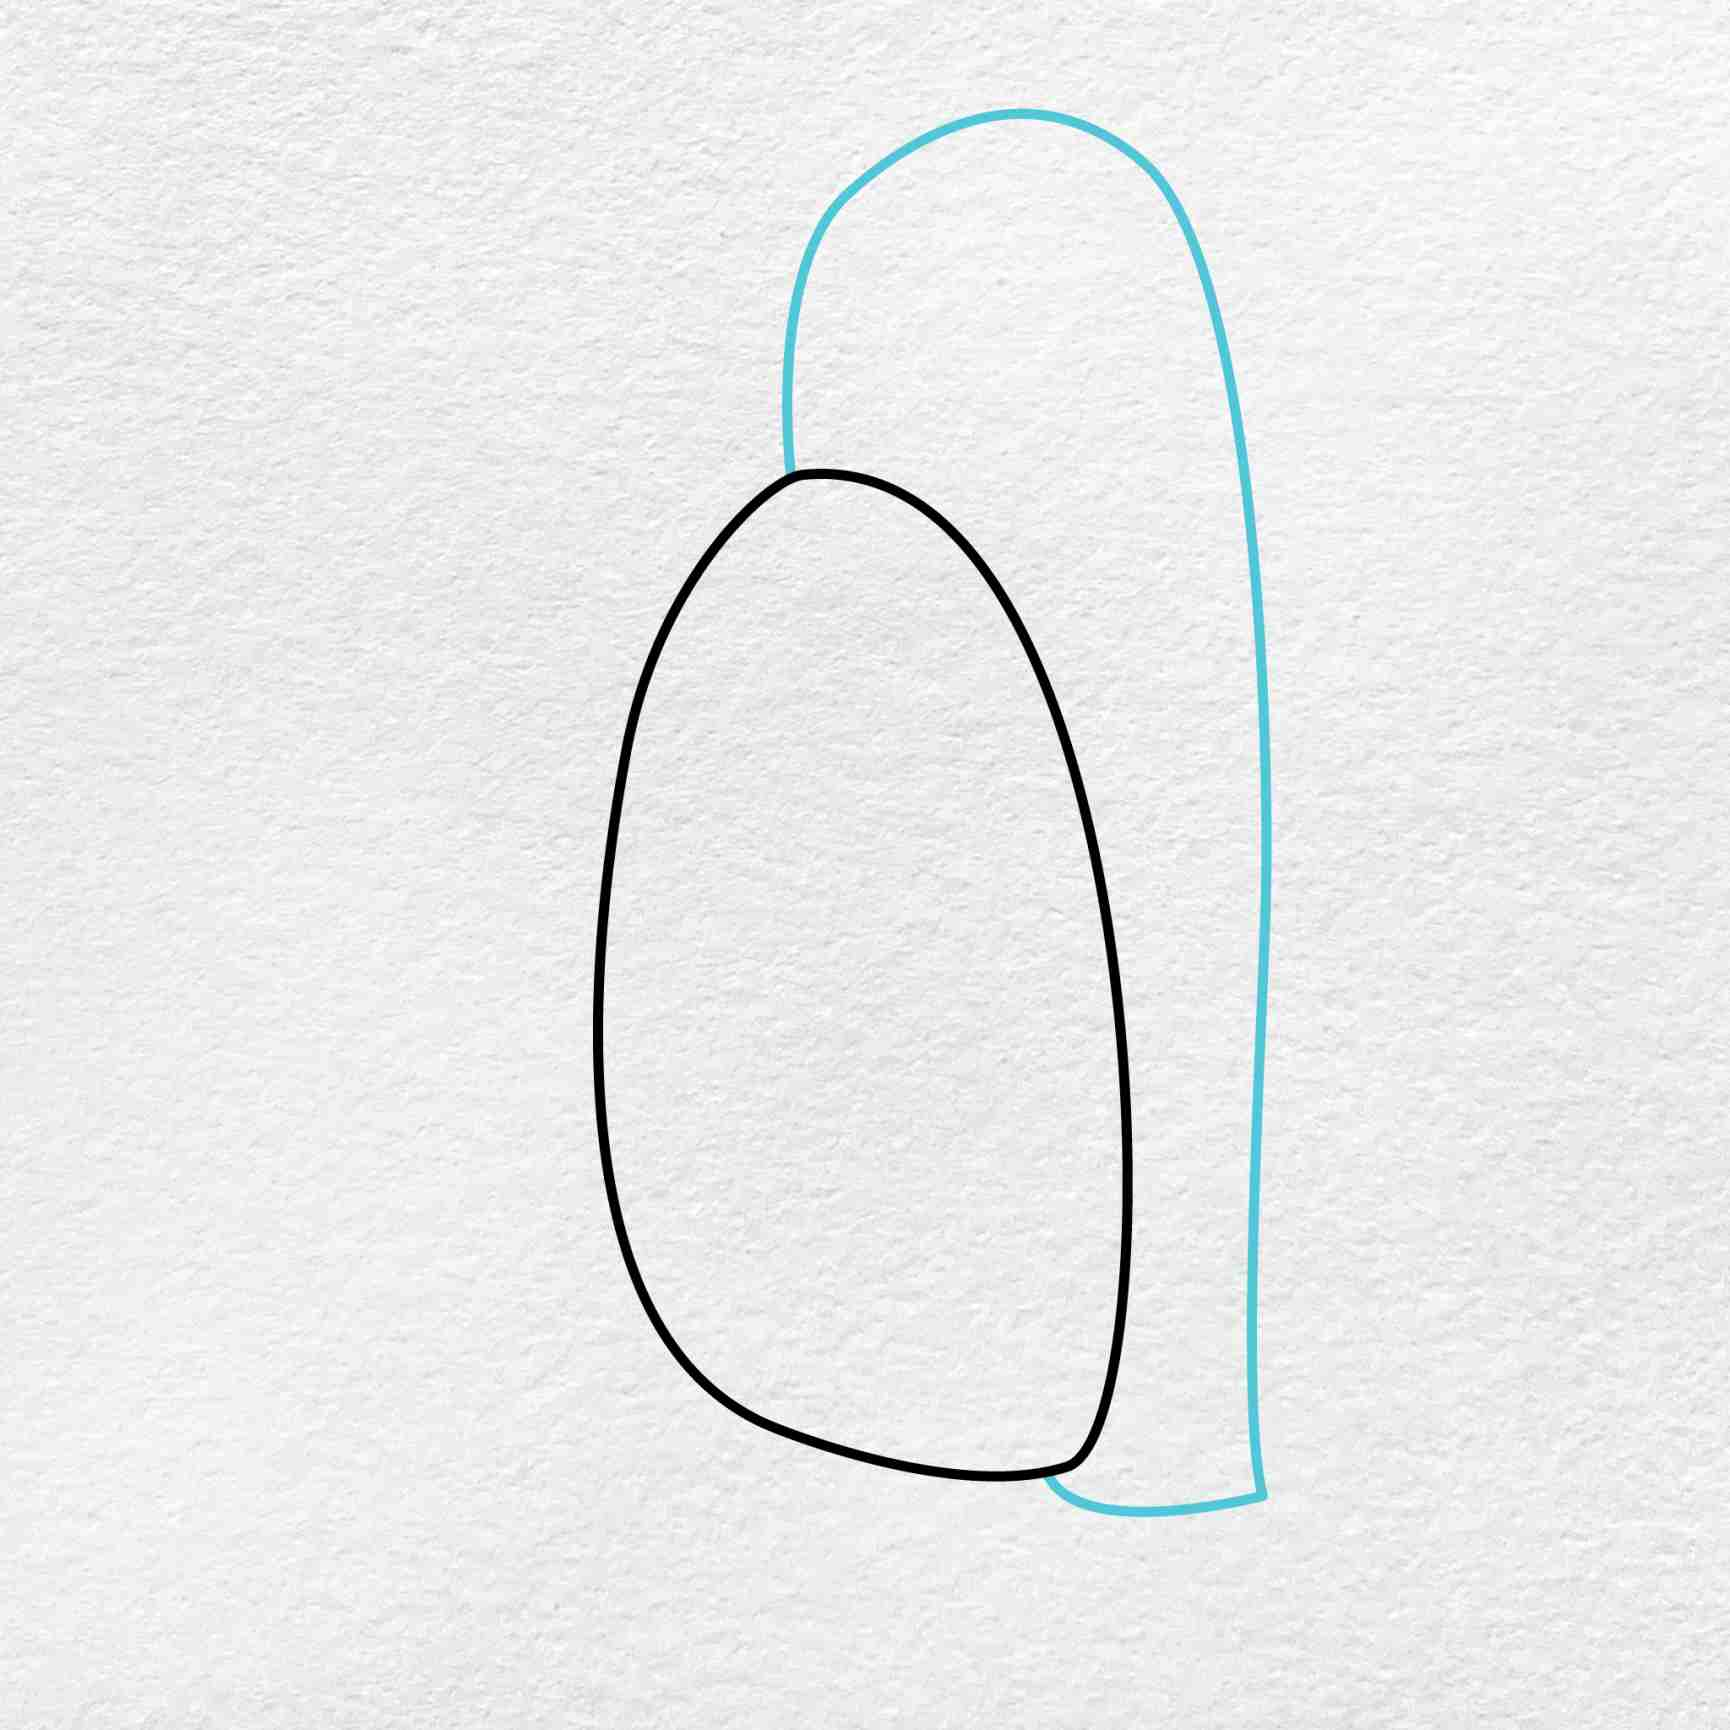 How To Draw A Penguin: Step 2